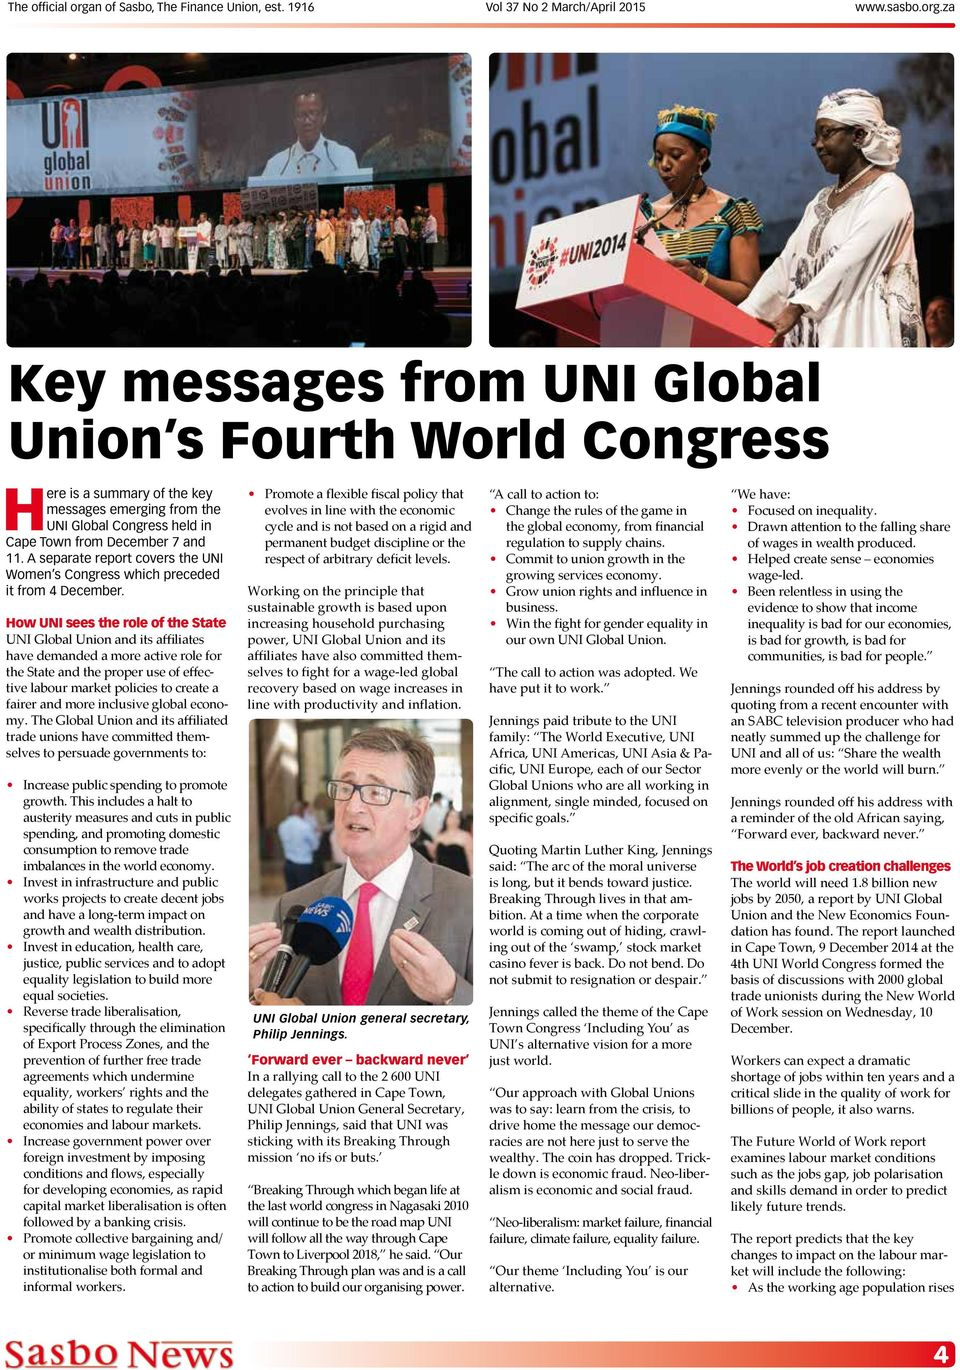 How UNI sees the role of the State UNI Global Union and its affiliates have demanded a more active role for the State and the proper use of effective labour market policies to create a fairer and